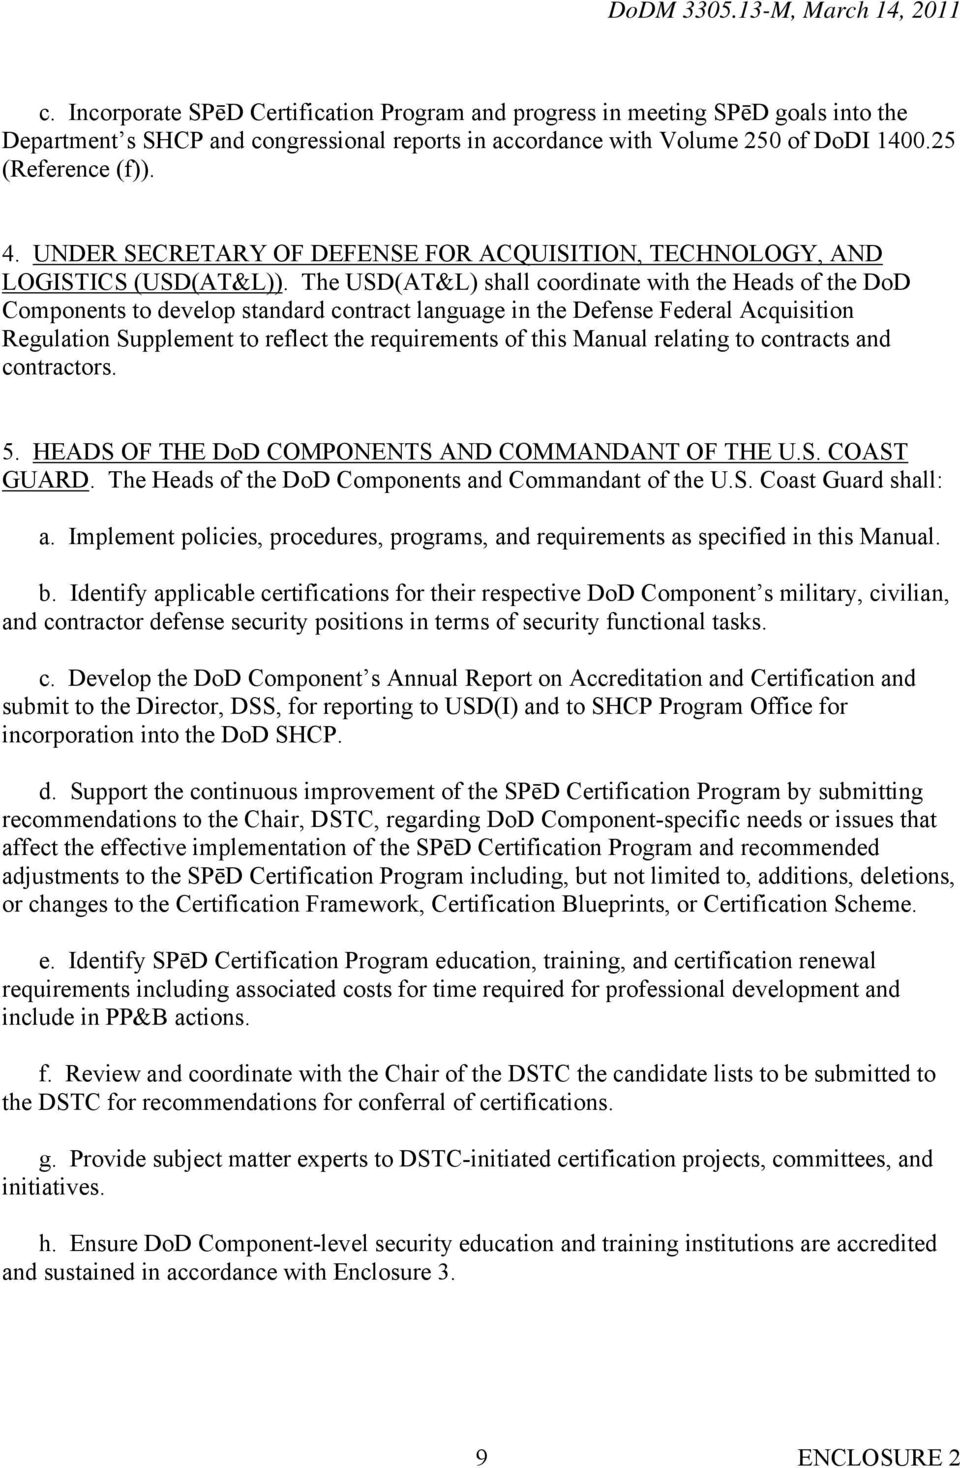 The USD(AT&L) shall coordinate with the Heads of the DoD Components to develop standard contract language in the Defense Federal Acquisition Regulation Supplement to reflect the requirements of this